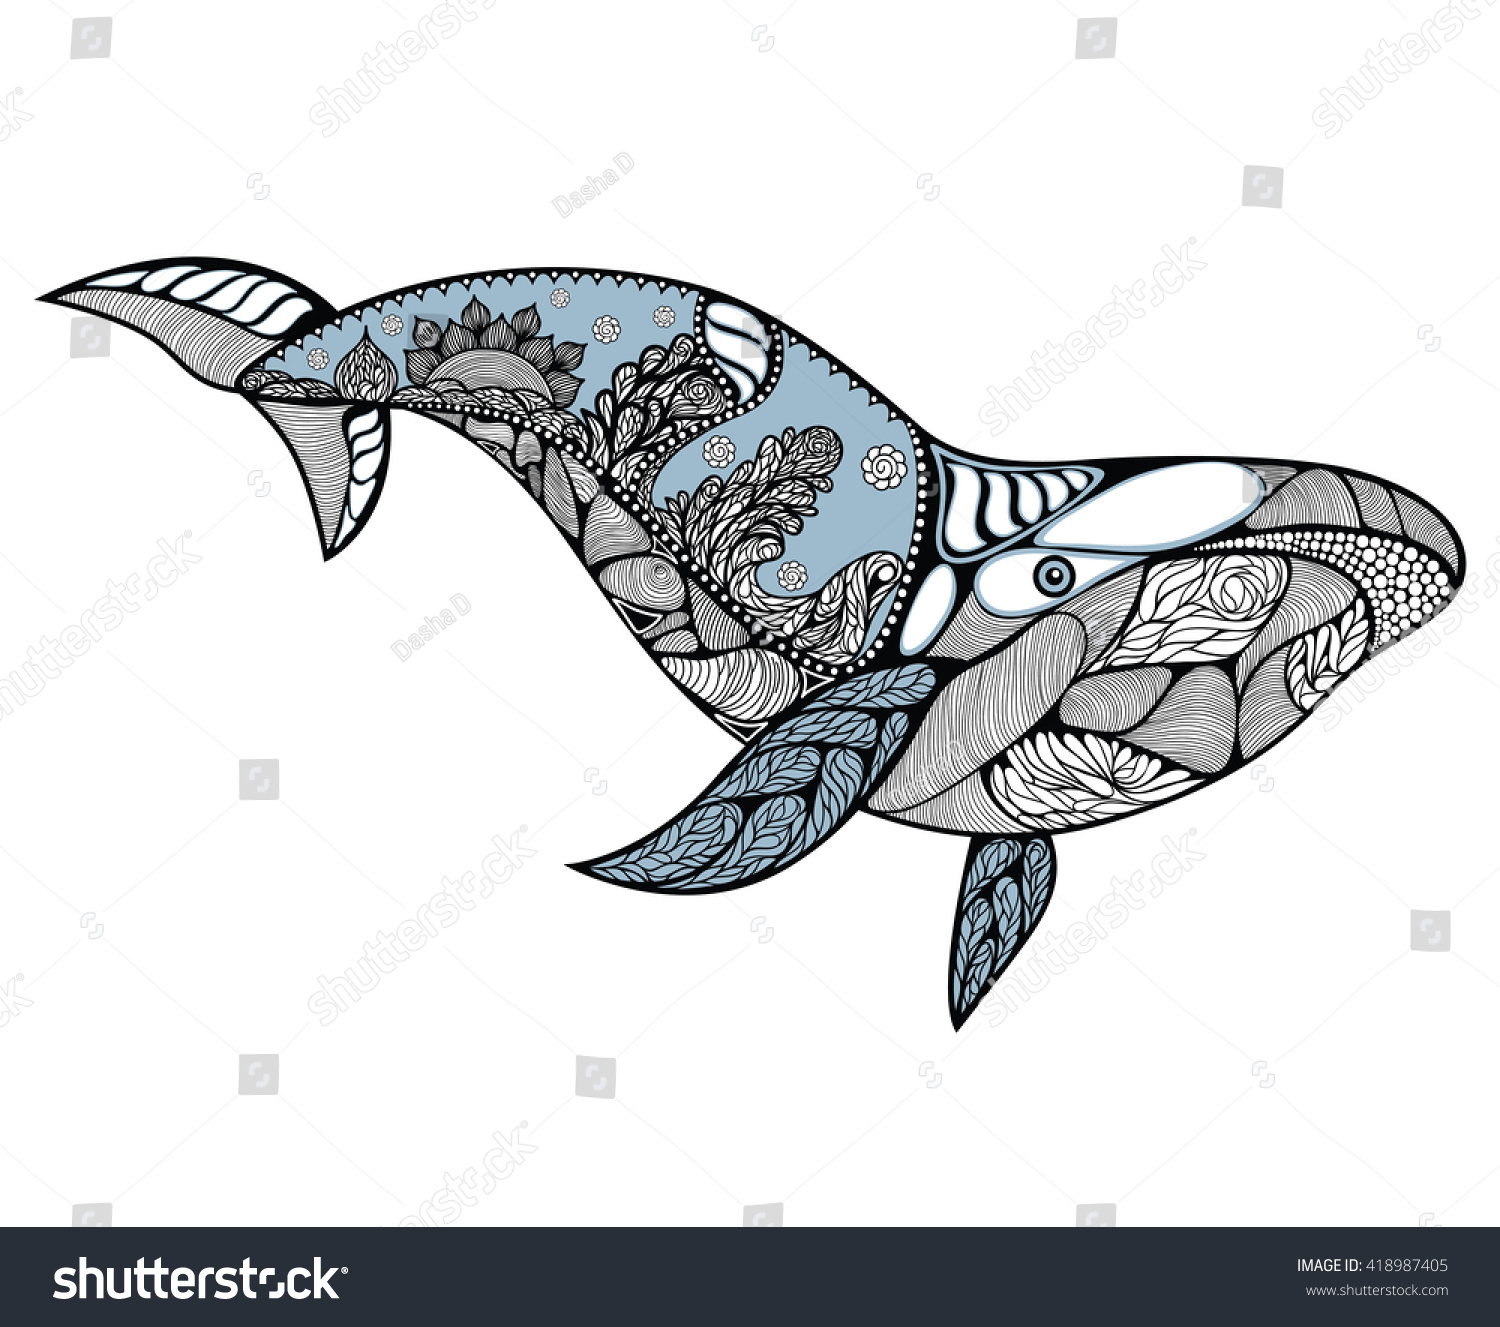 Stock vector ethnic animal doodle detail pattern killer whale - Big Blue Whale With Wavy Ornaments And Hand Drawn Shapes Whale Pattern With High Details